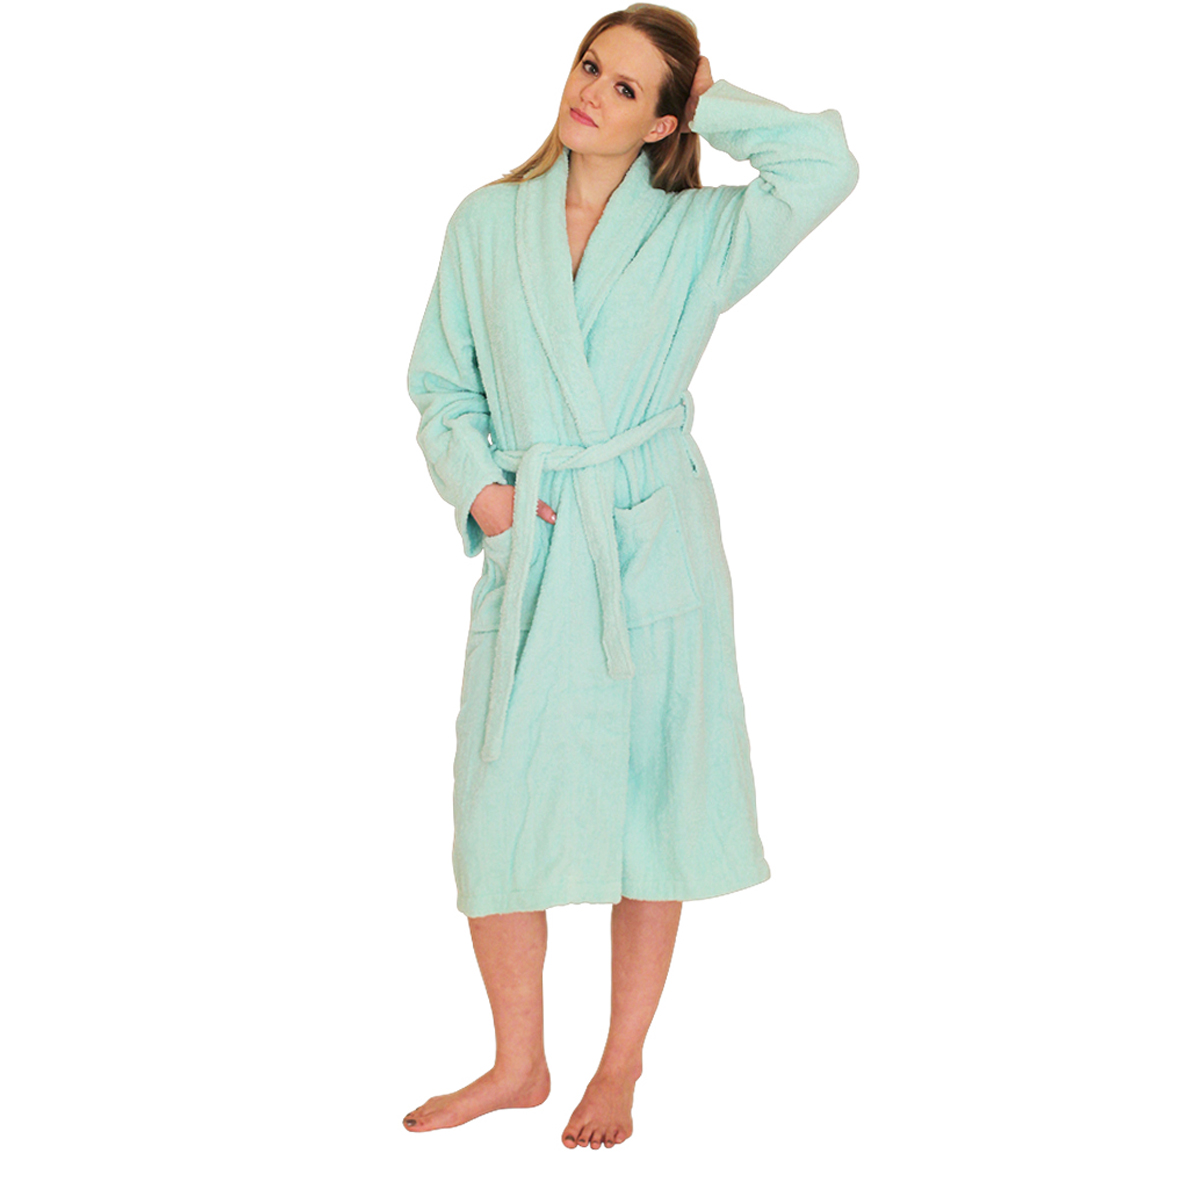 d8f06431e3 Bathrobes Terry cloth robes for women from  15 Spa Hotel quality ...